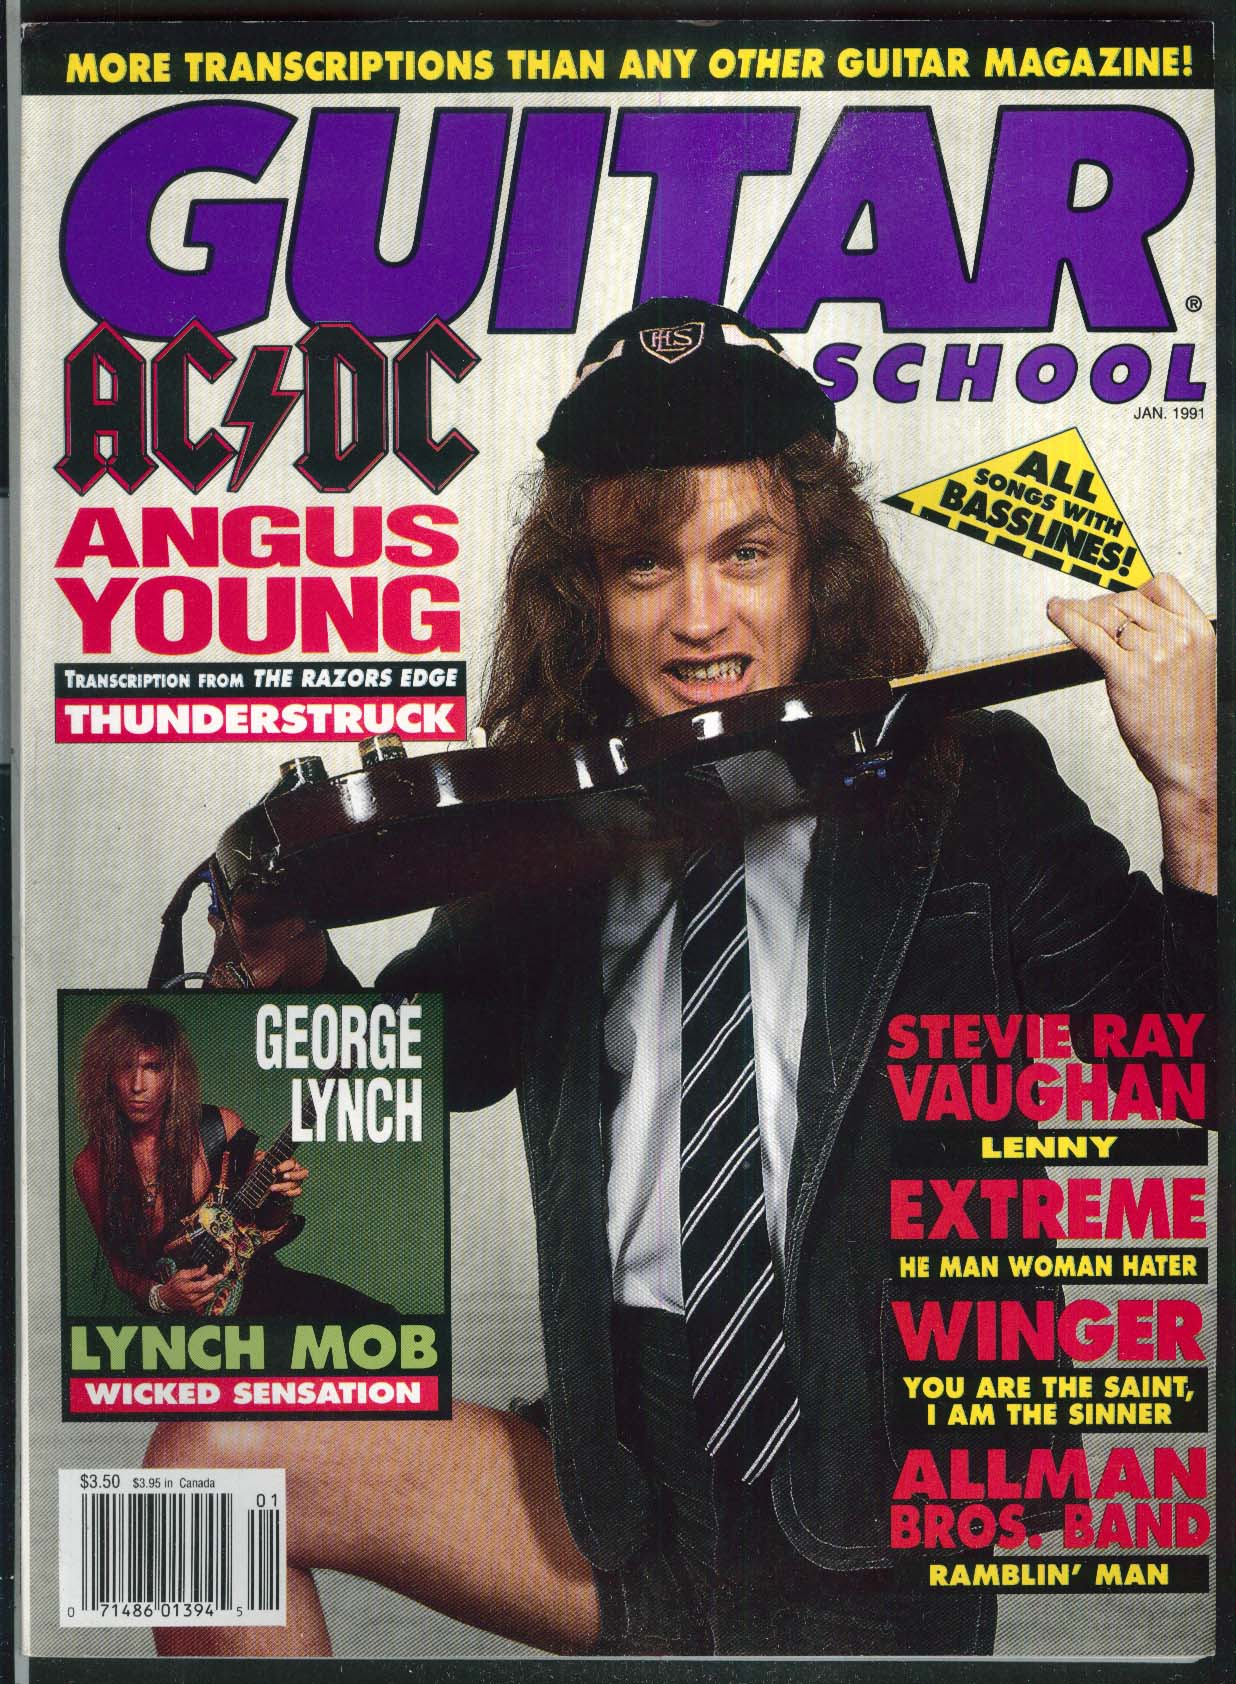 GUITAR SCHOOL Angus Young George Lynch Stevie Ray Vaughan 1 1991